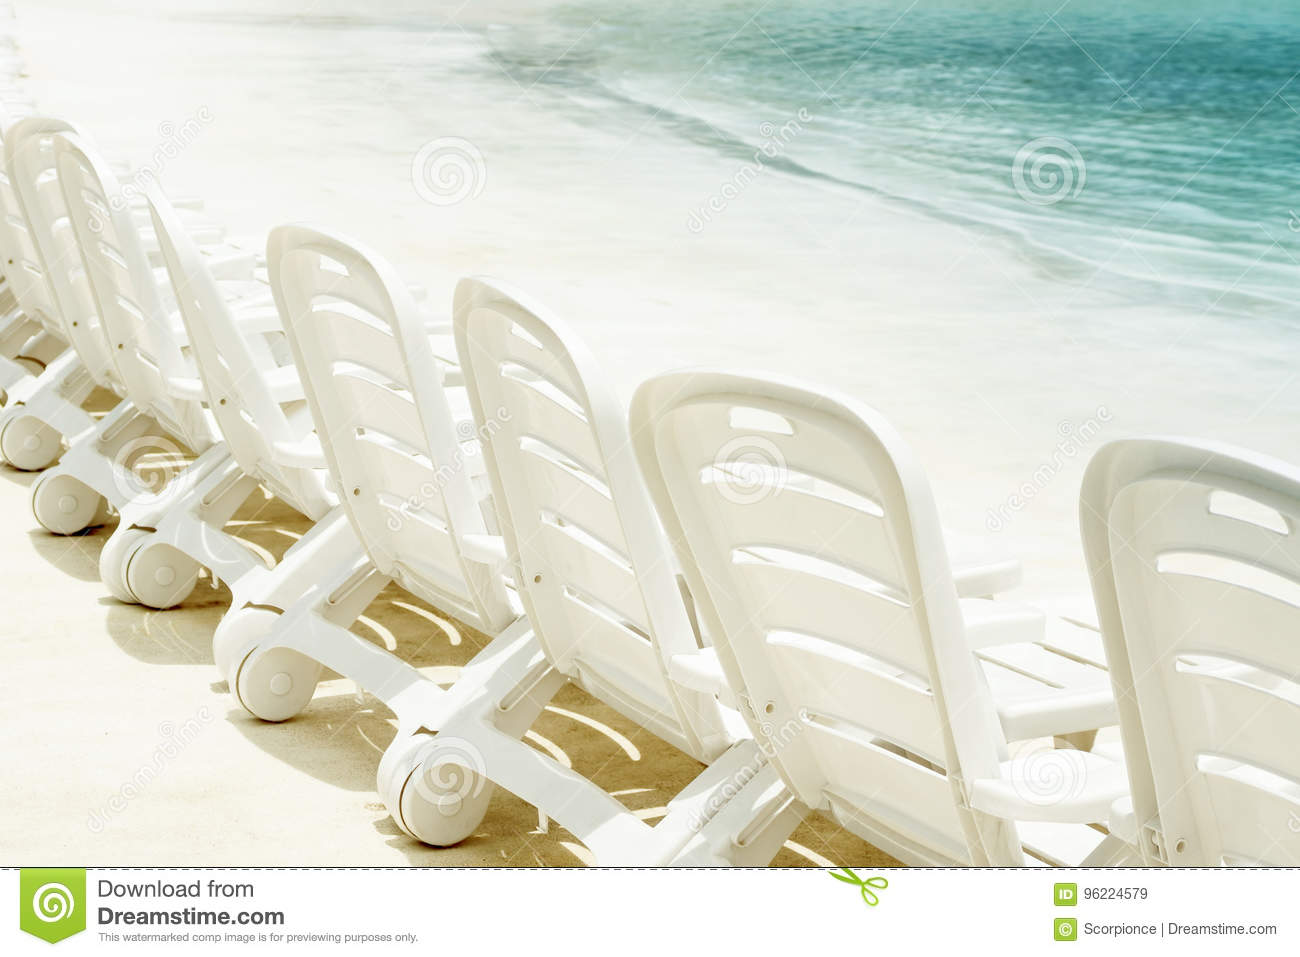 White Plastic Sun Loungers Row Of Plastic Sun Loungers By The Water On A White Sand Beach